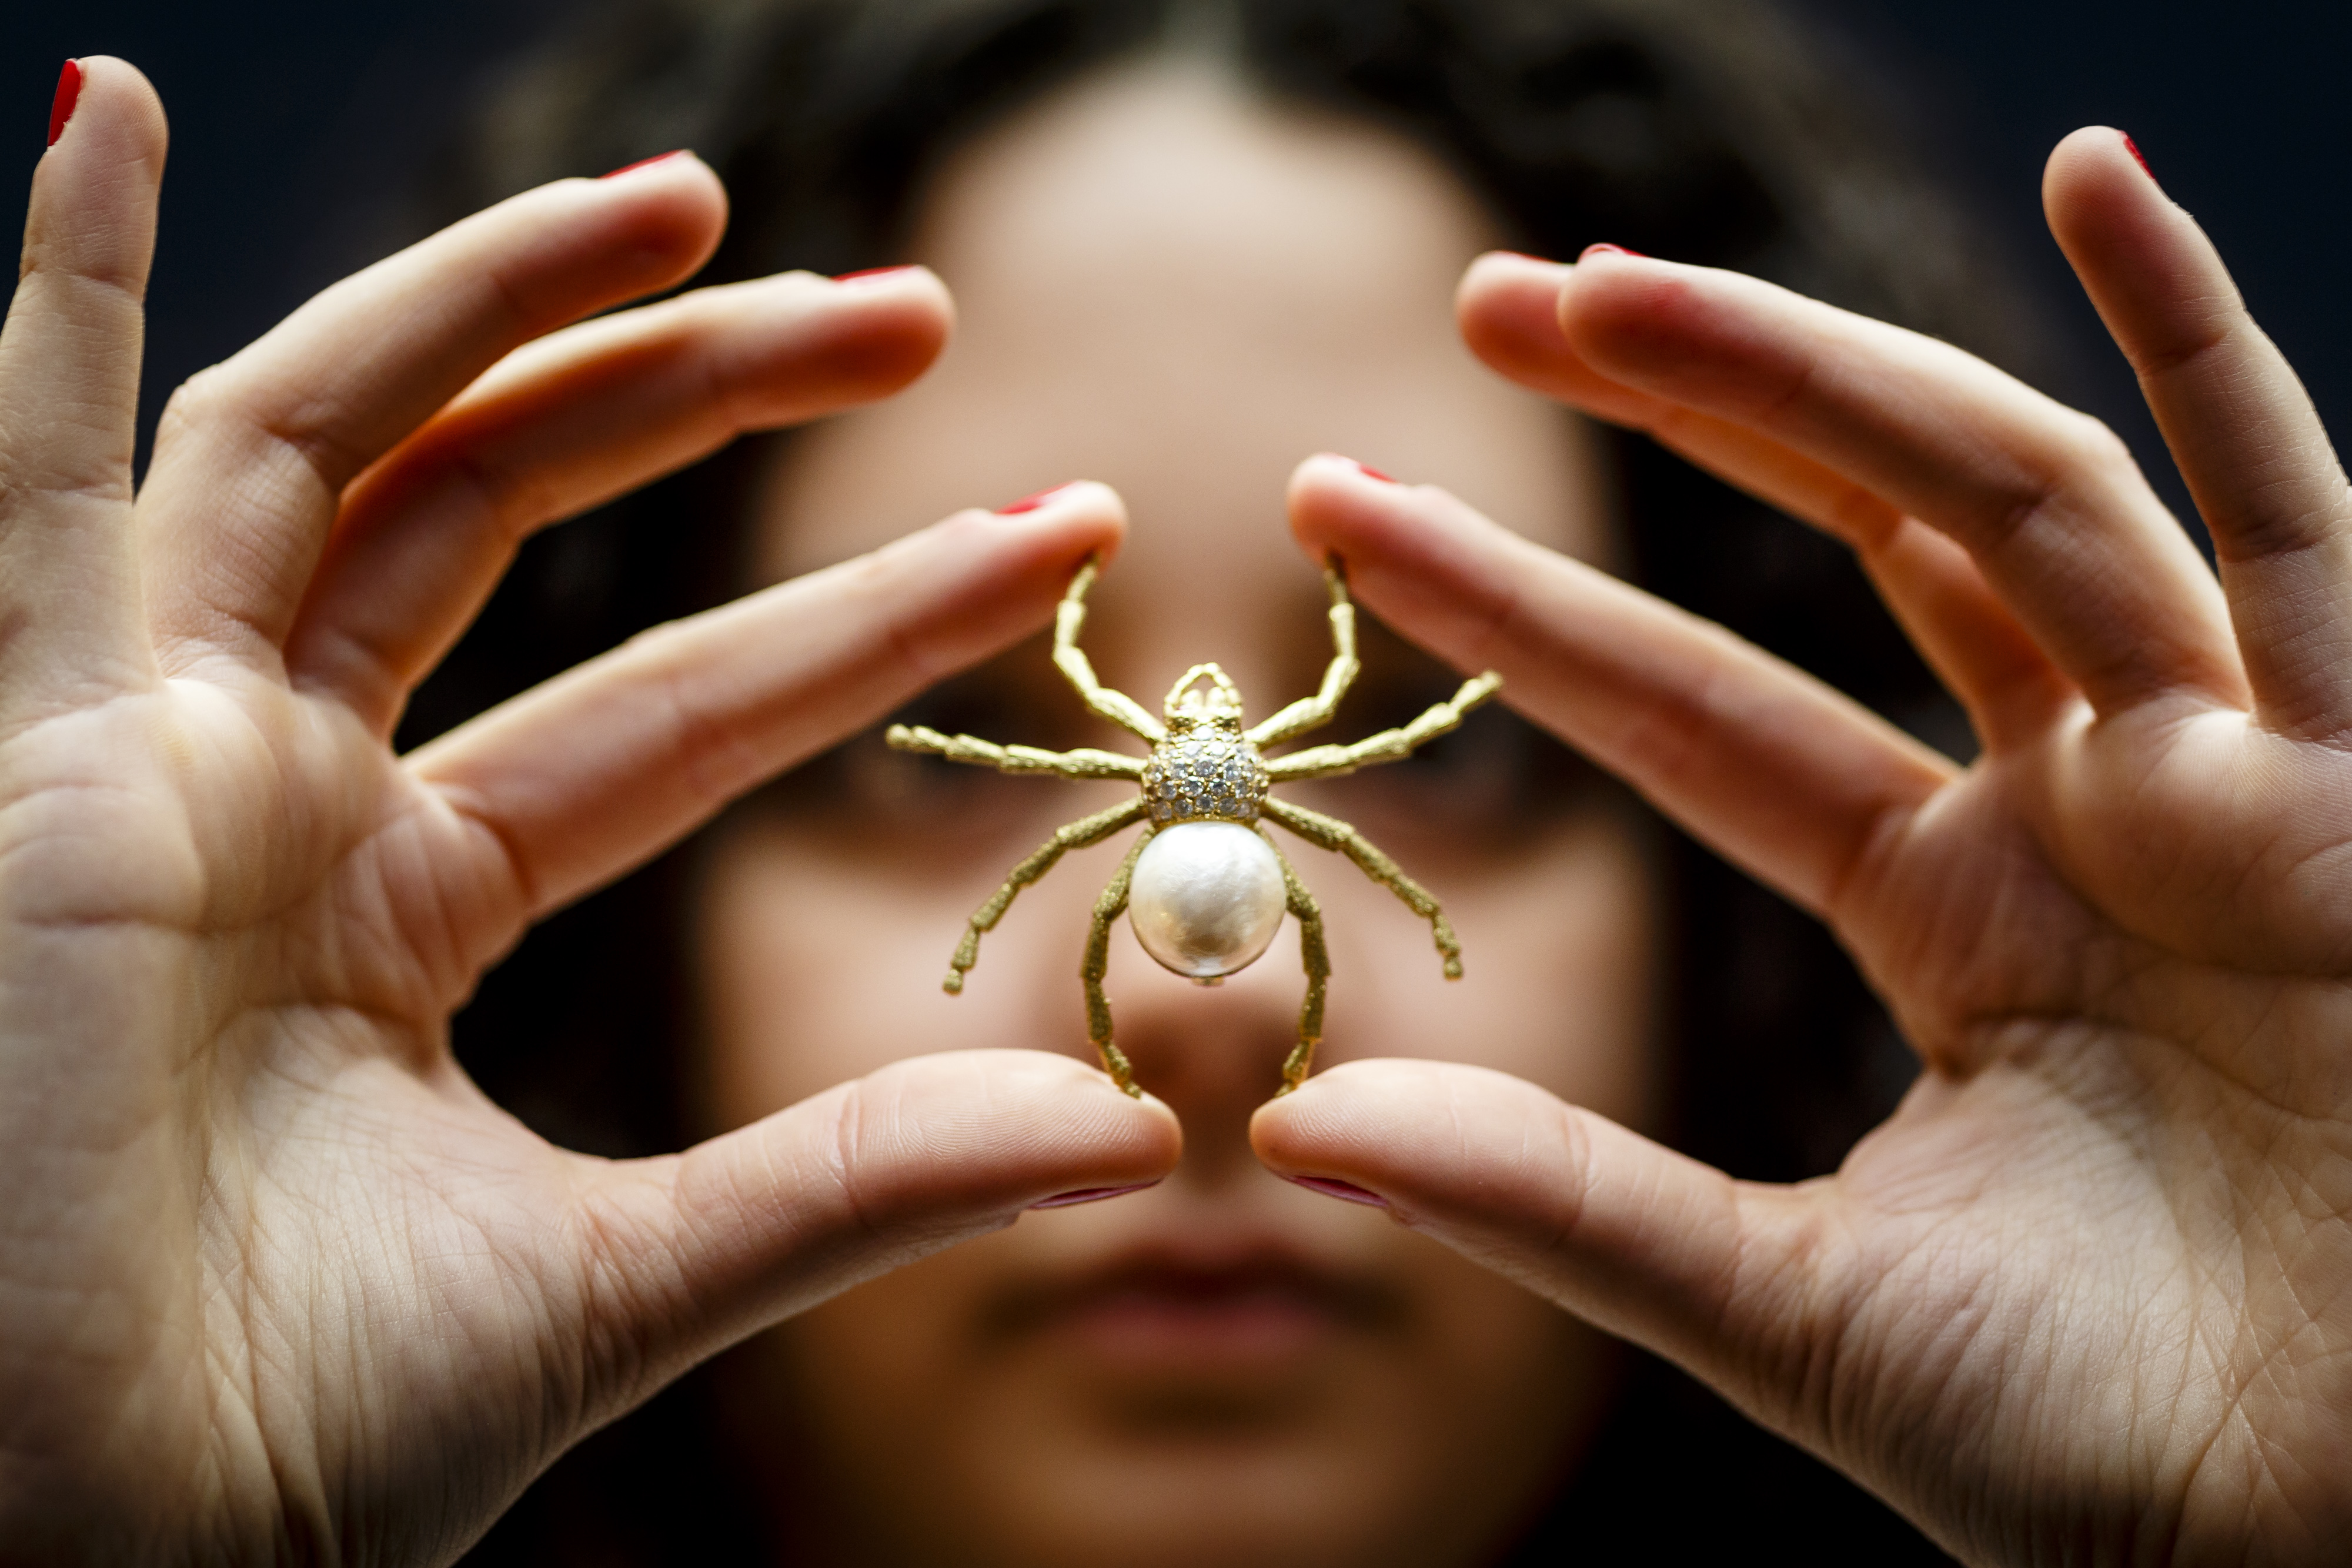 The Symbolism and Meaning of Spiders in Dreams